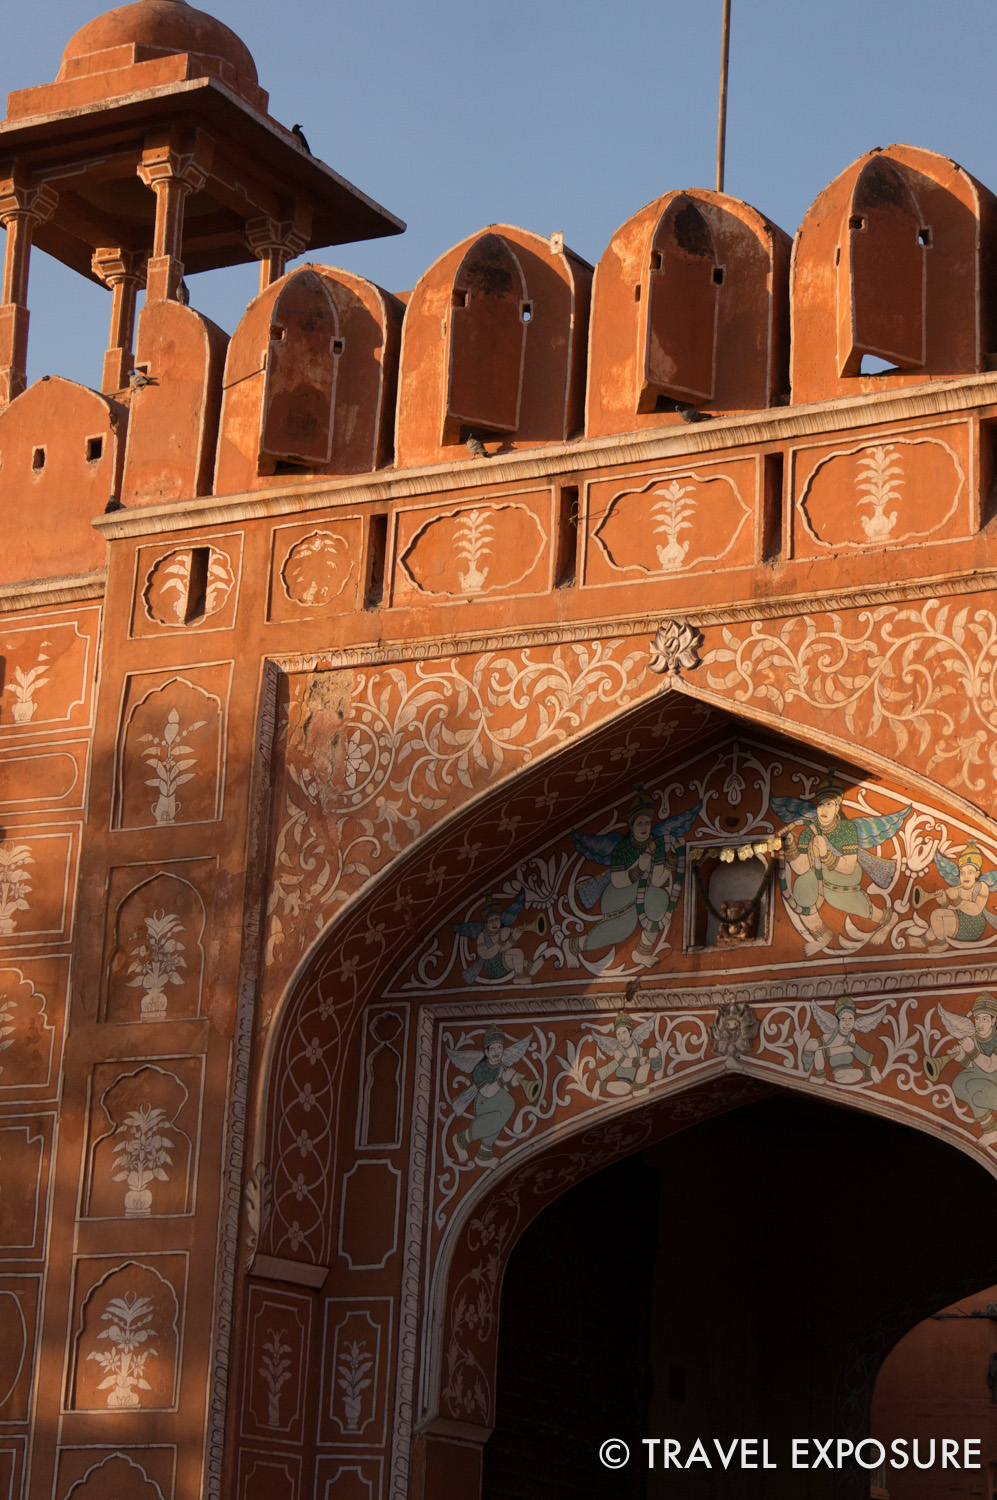 A gate into the old city of Jaipur, India.